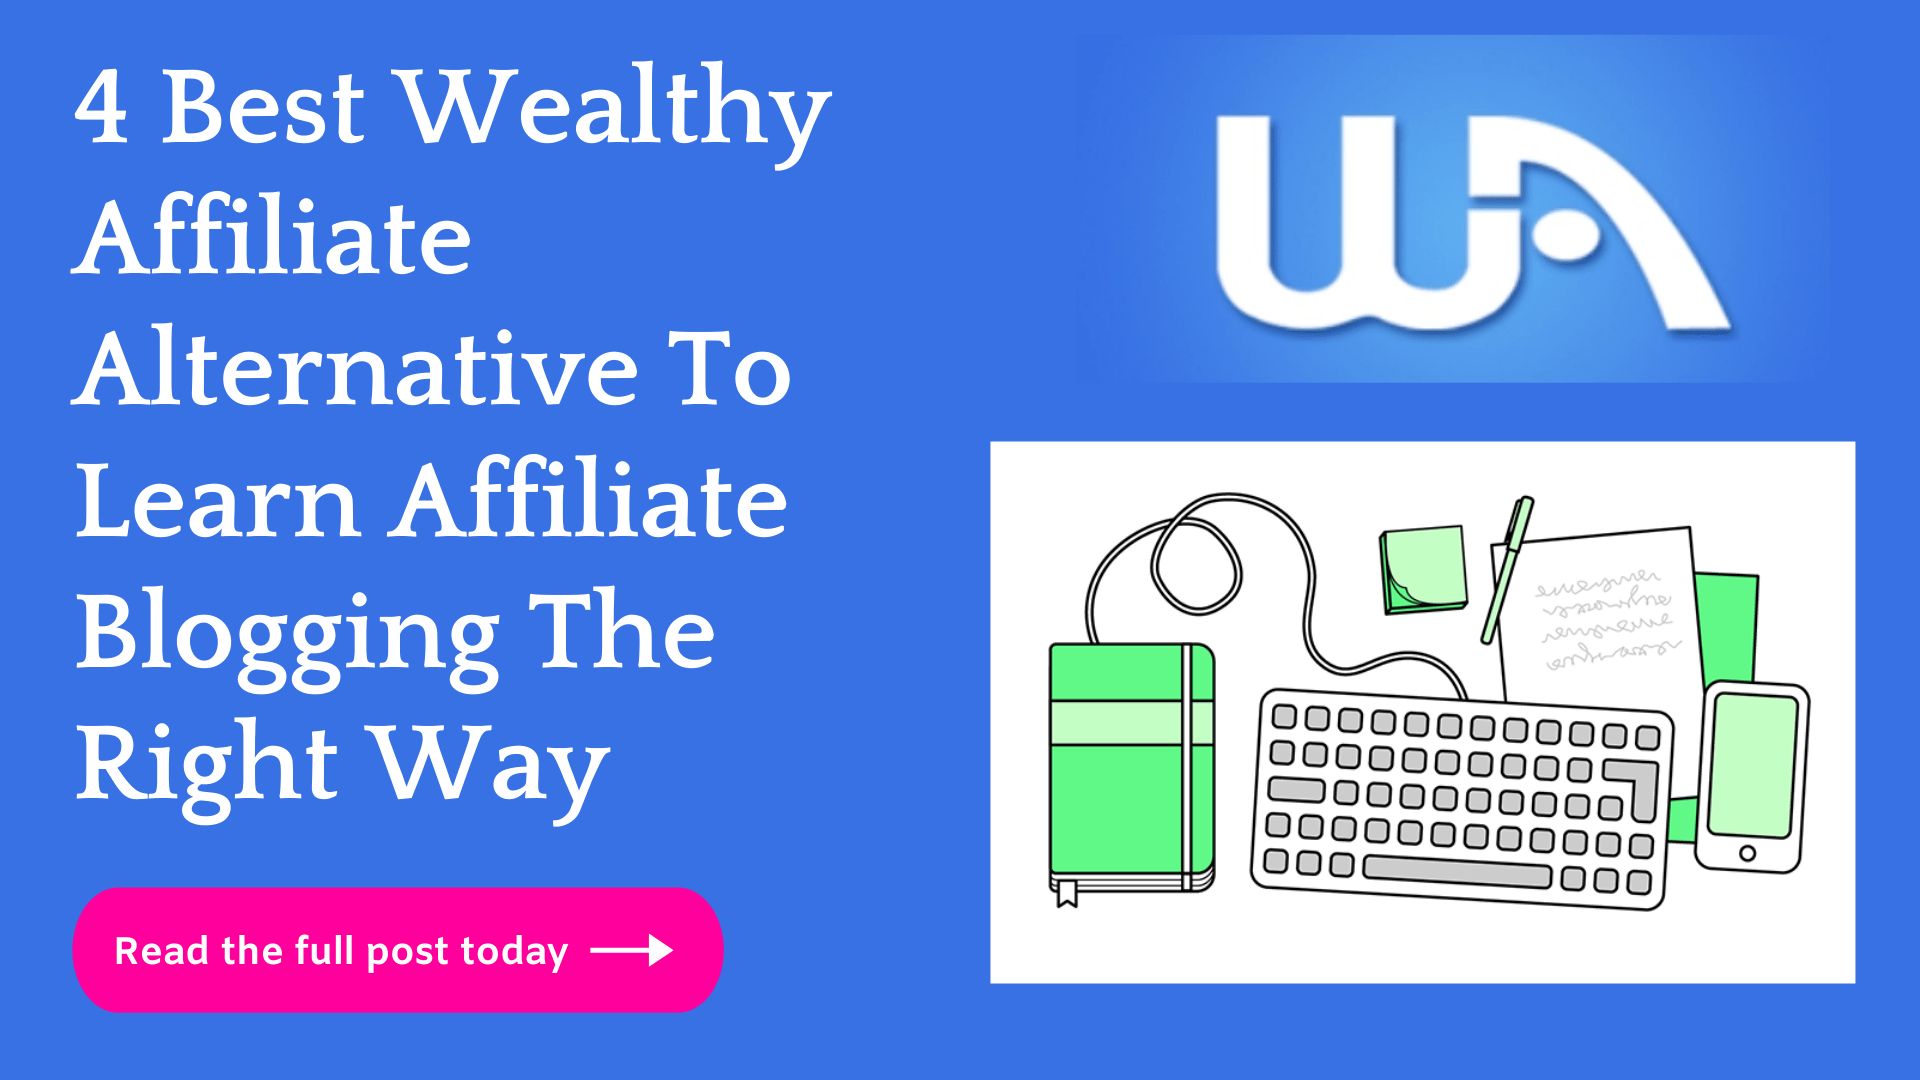 4 Best Wealthy Affiliate Alternatives To Learn Affiliate Blogging